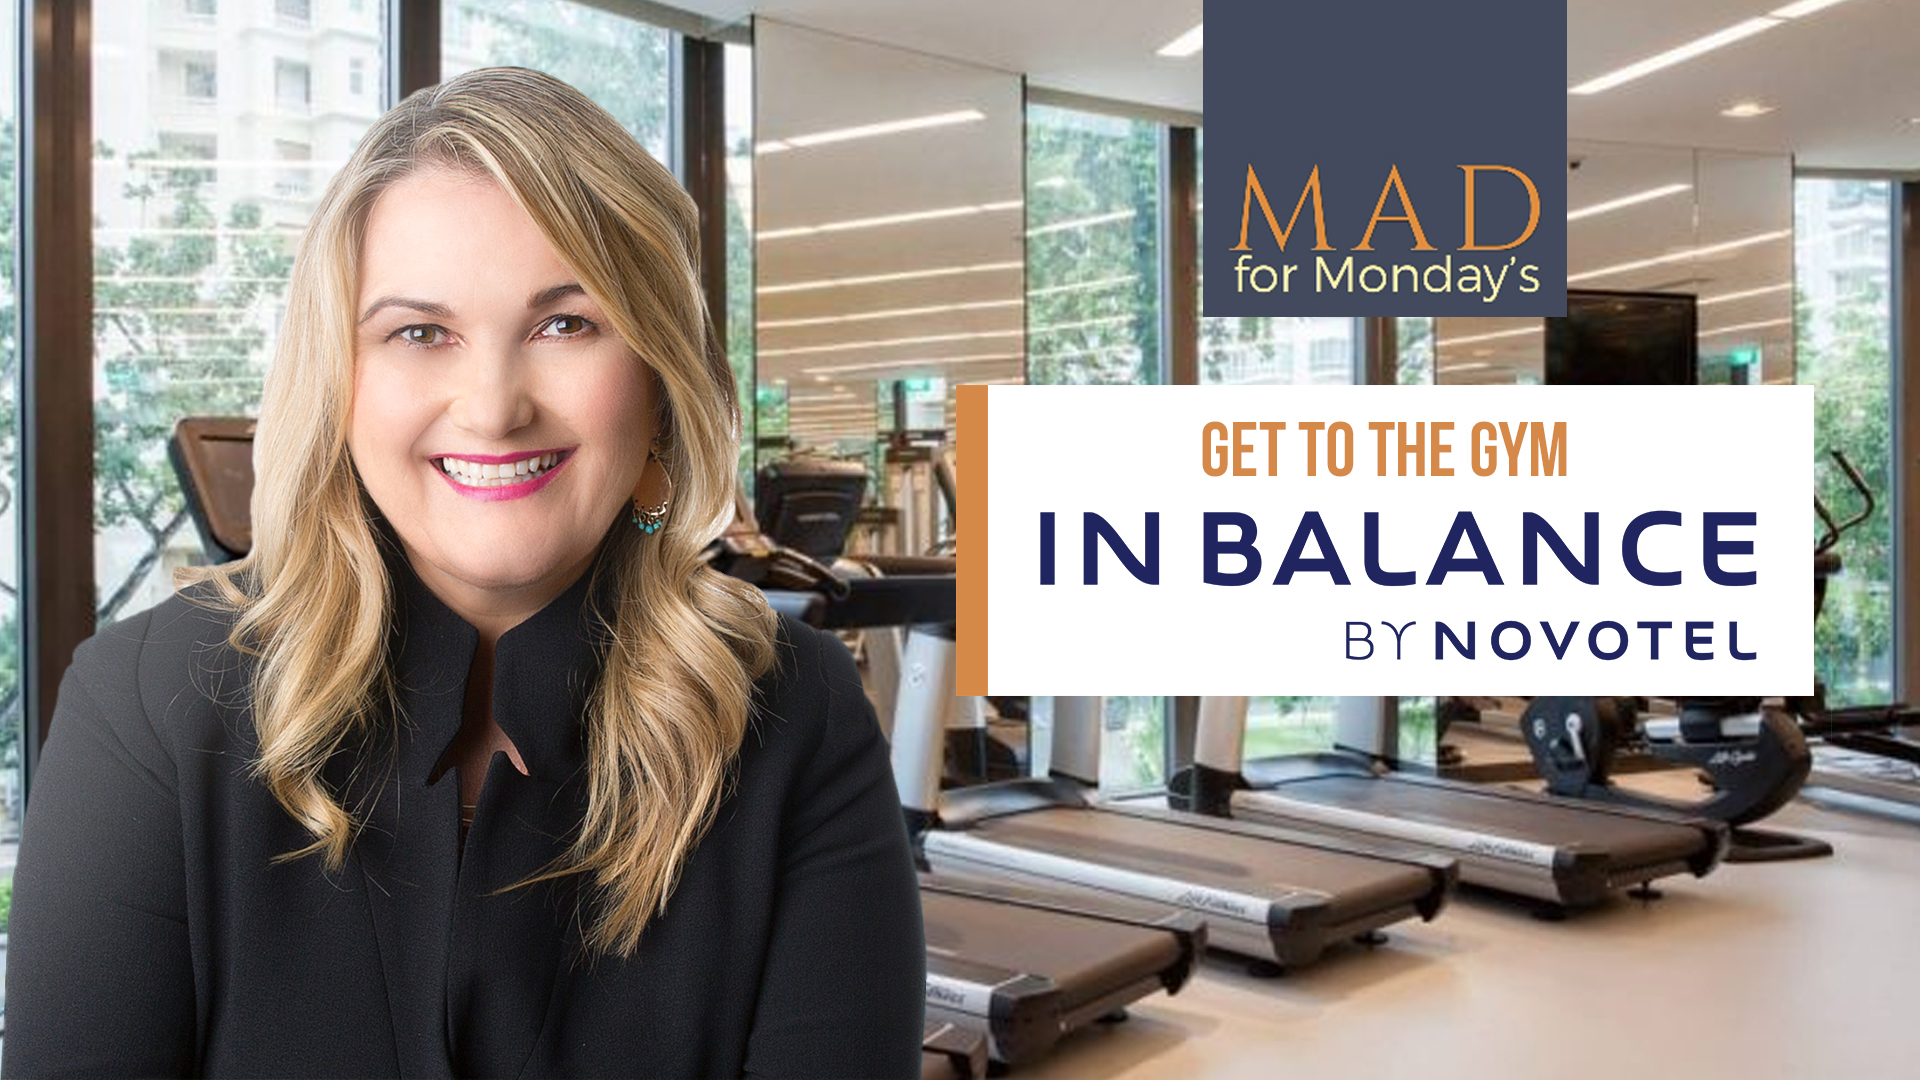 M.A.D. (Make a Difference) for Monday's – In Balance